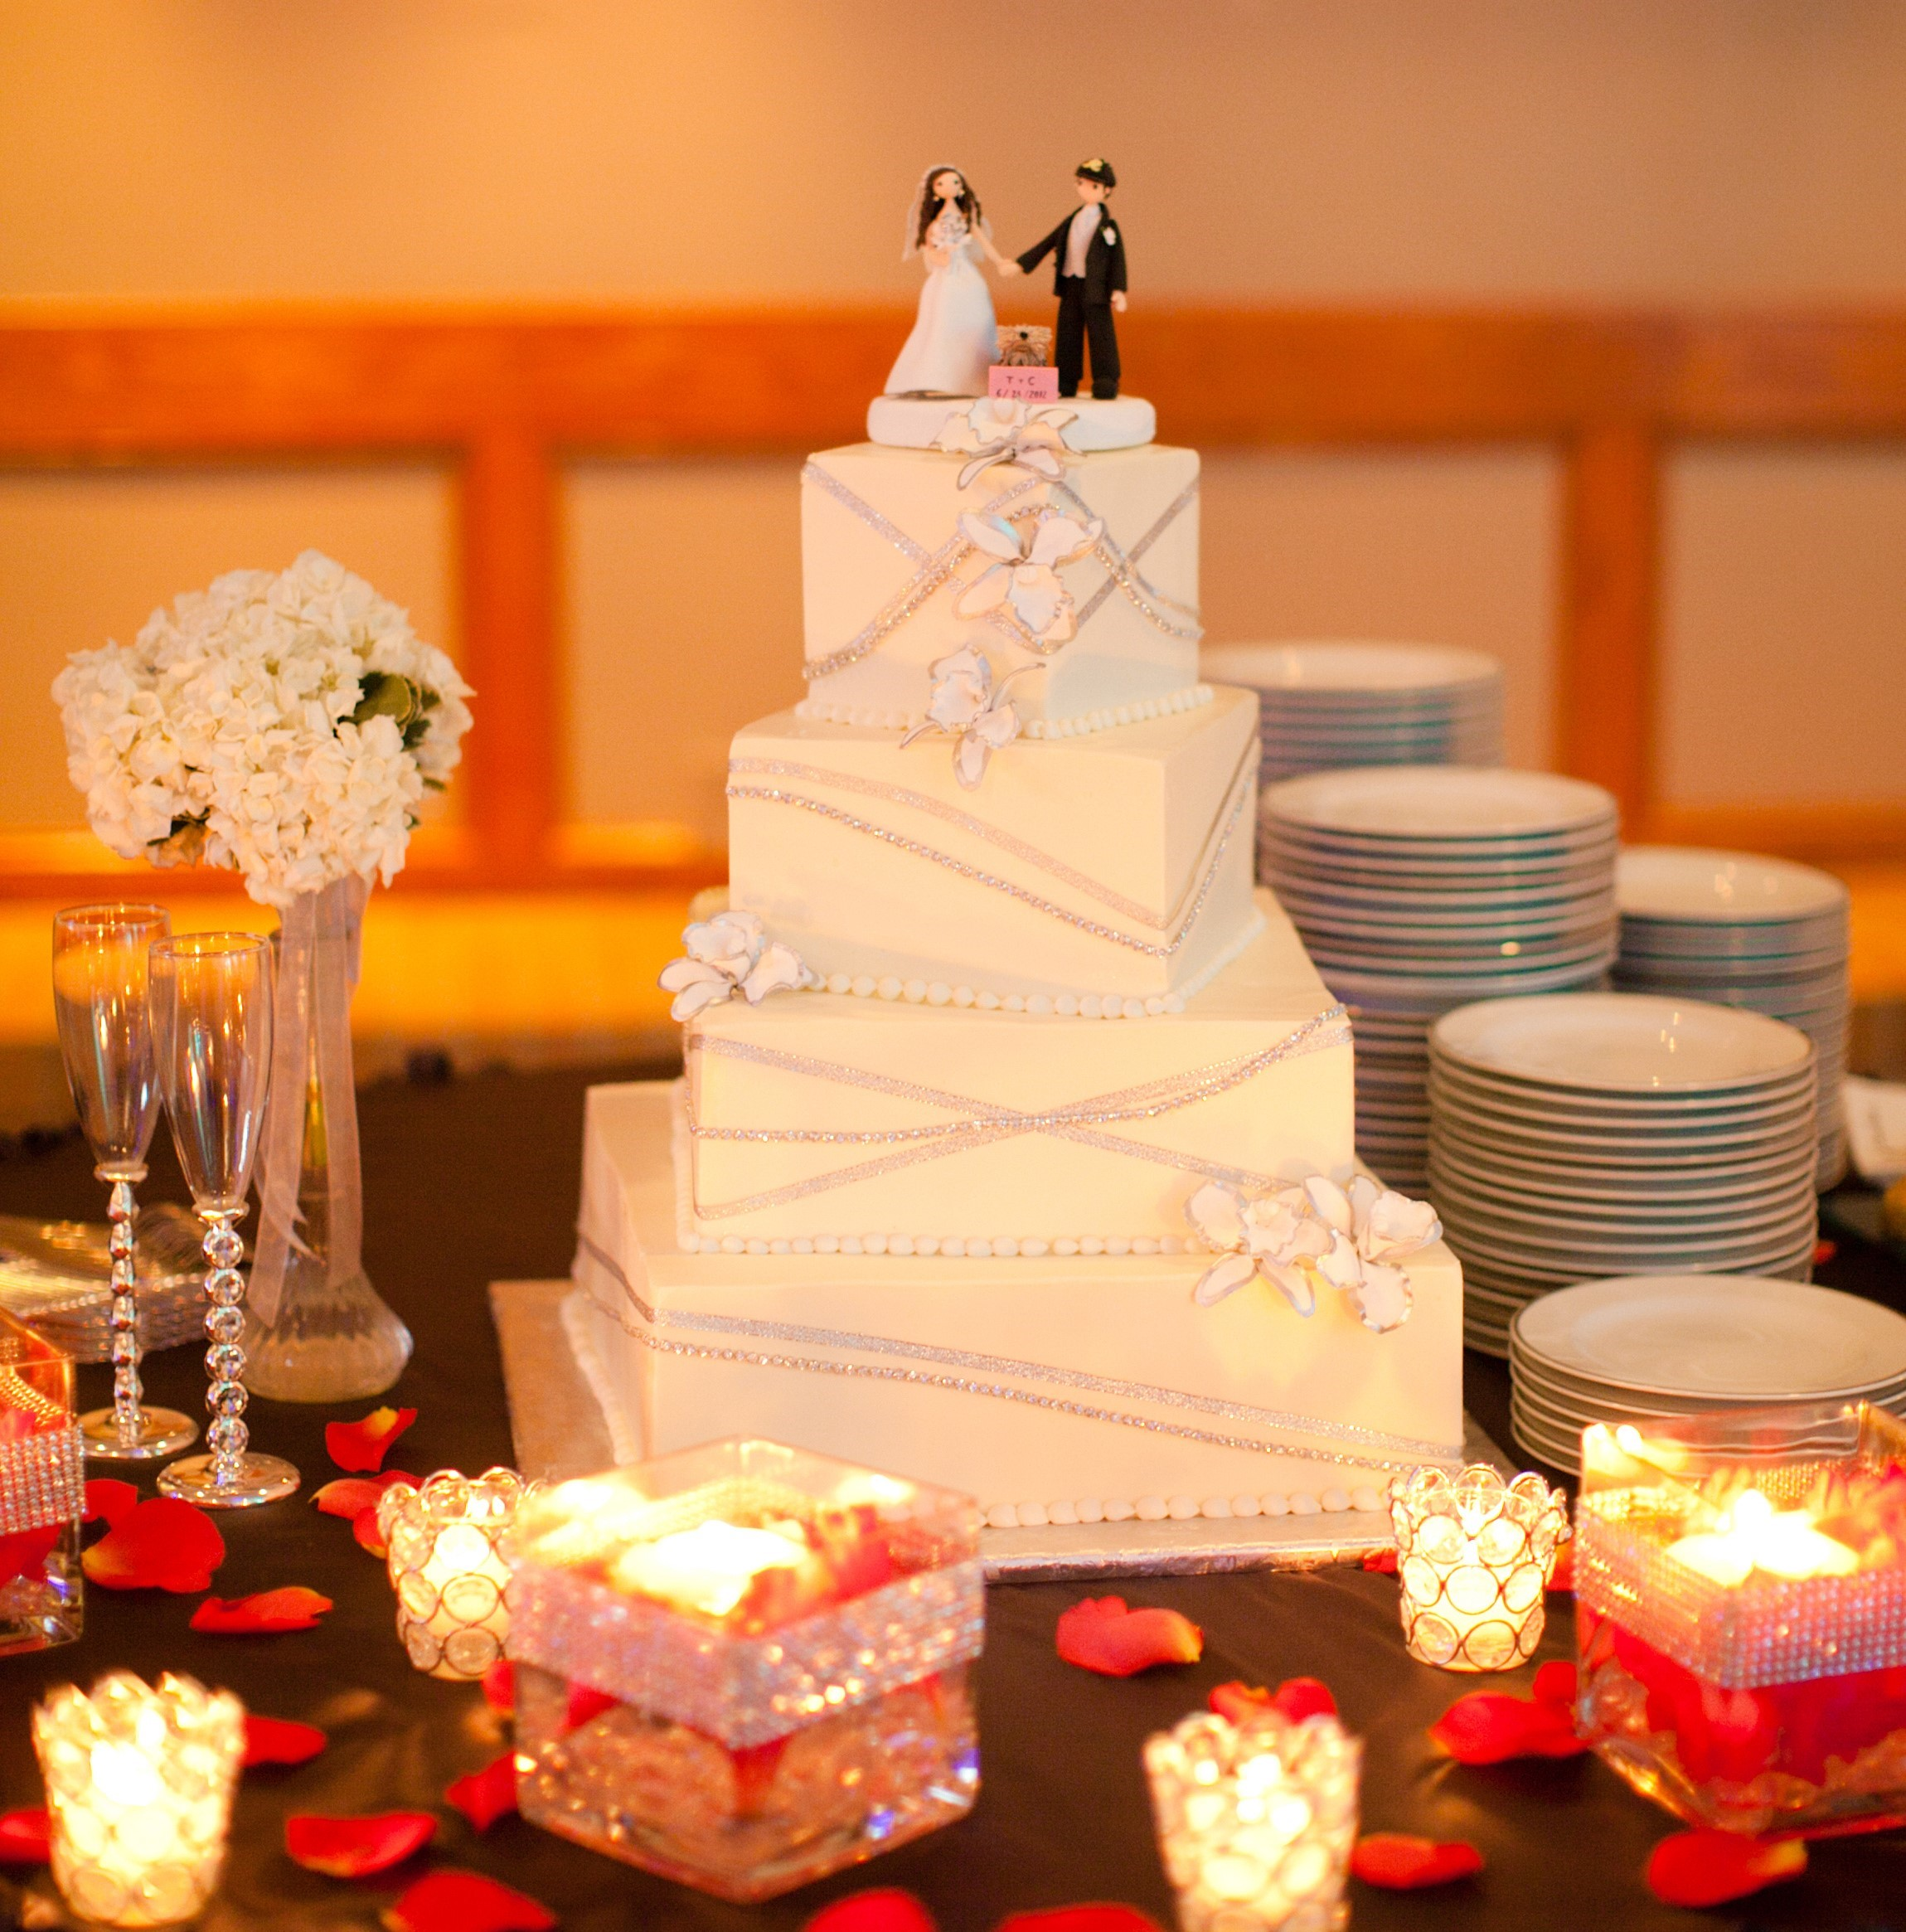 Wedding Cake on Table Decorated with Candles and Flowers at Cherry Hill Ballroom